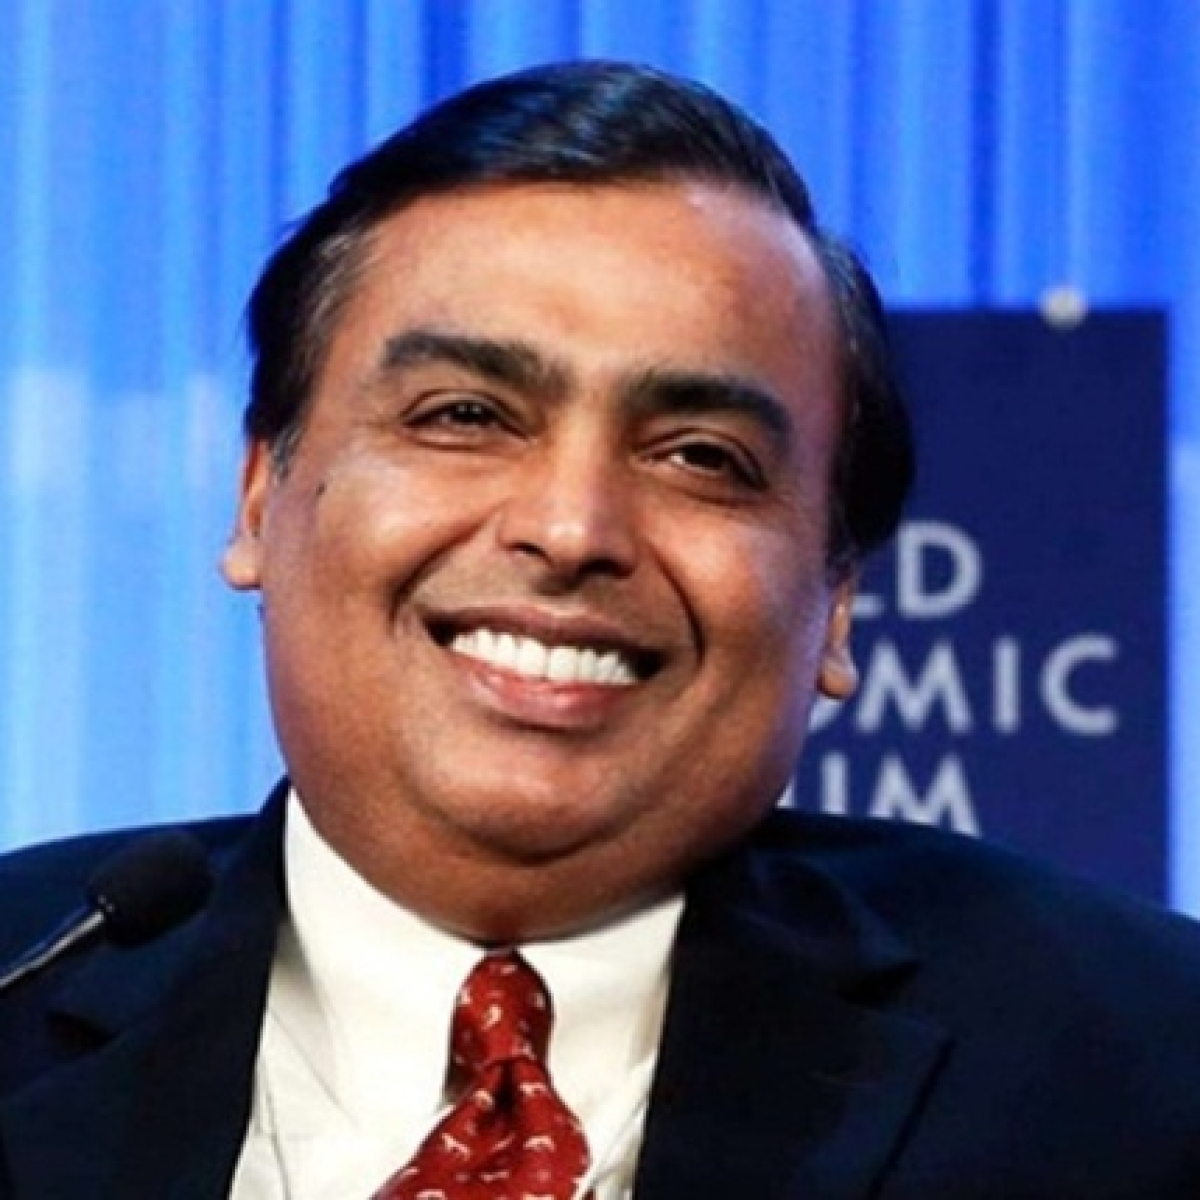 Mukesh Ambani is now the sixth richest person in the world - who are the top 5?